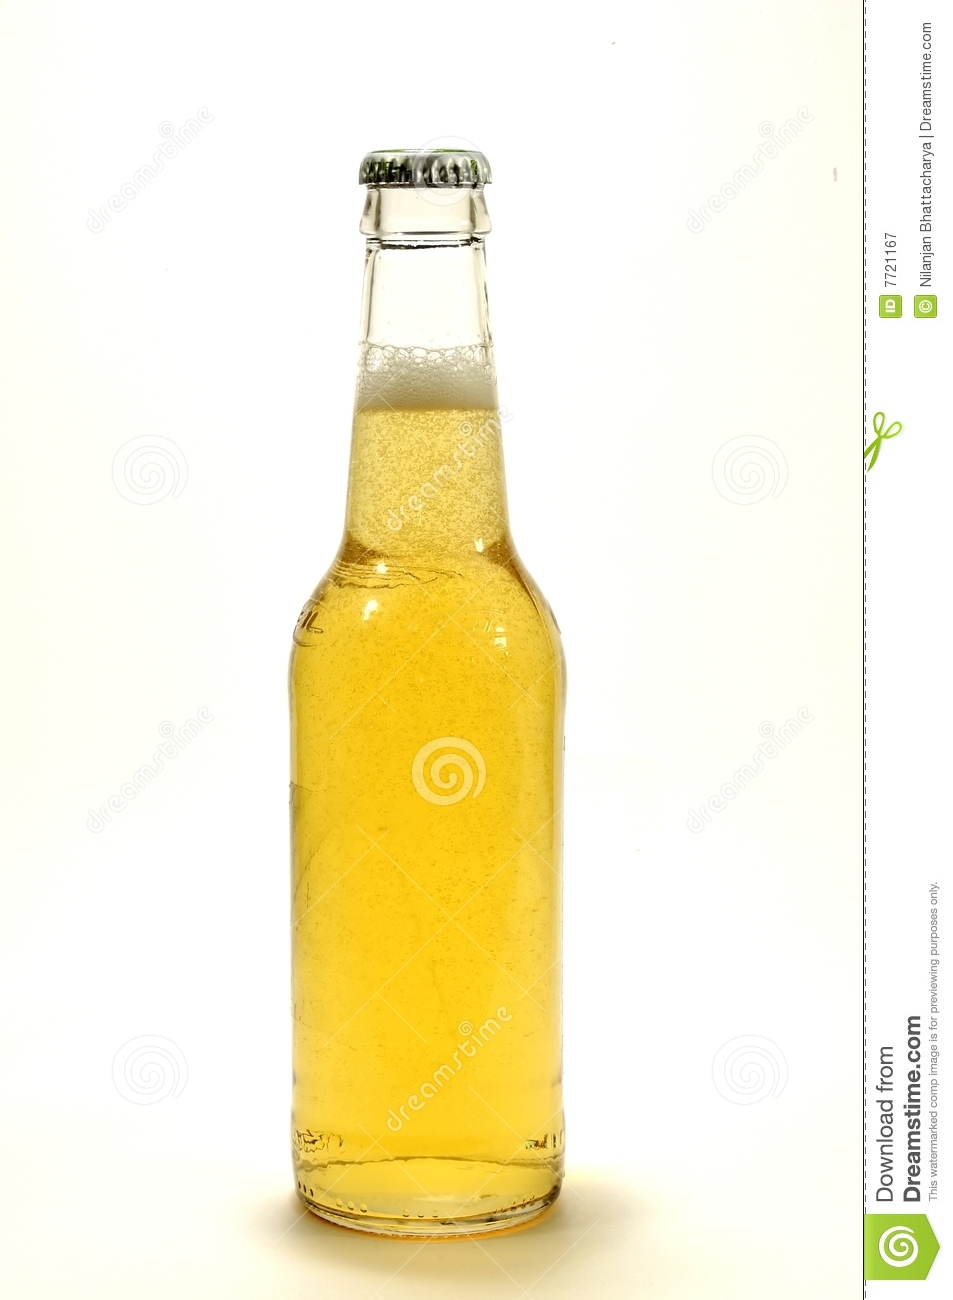 Isolated Beer Bottle Royalty Free Stock Photography - Image: 7721167